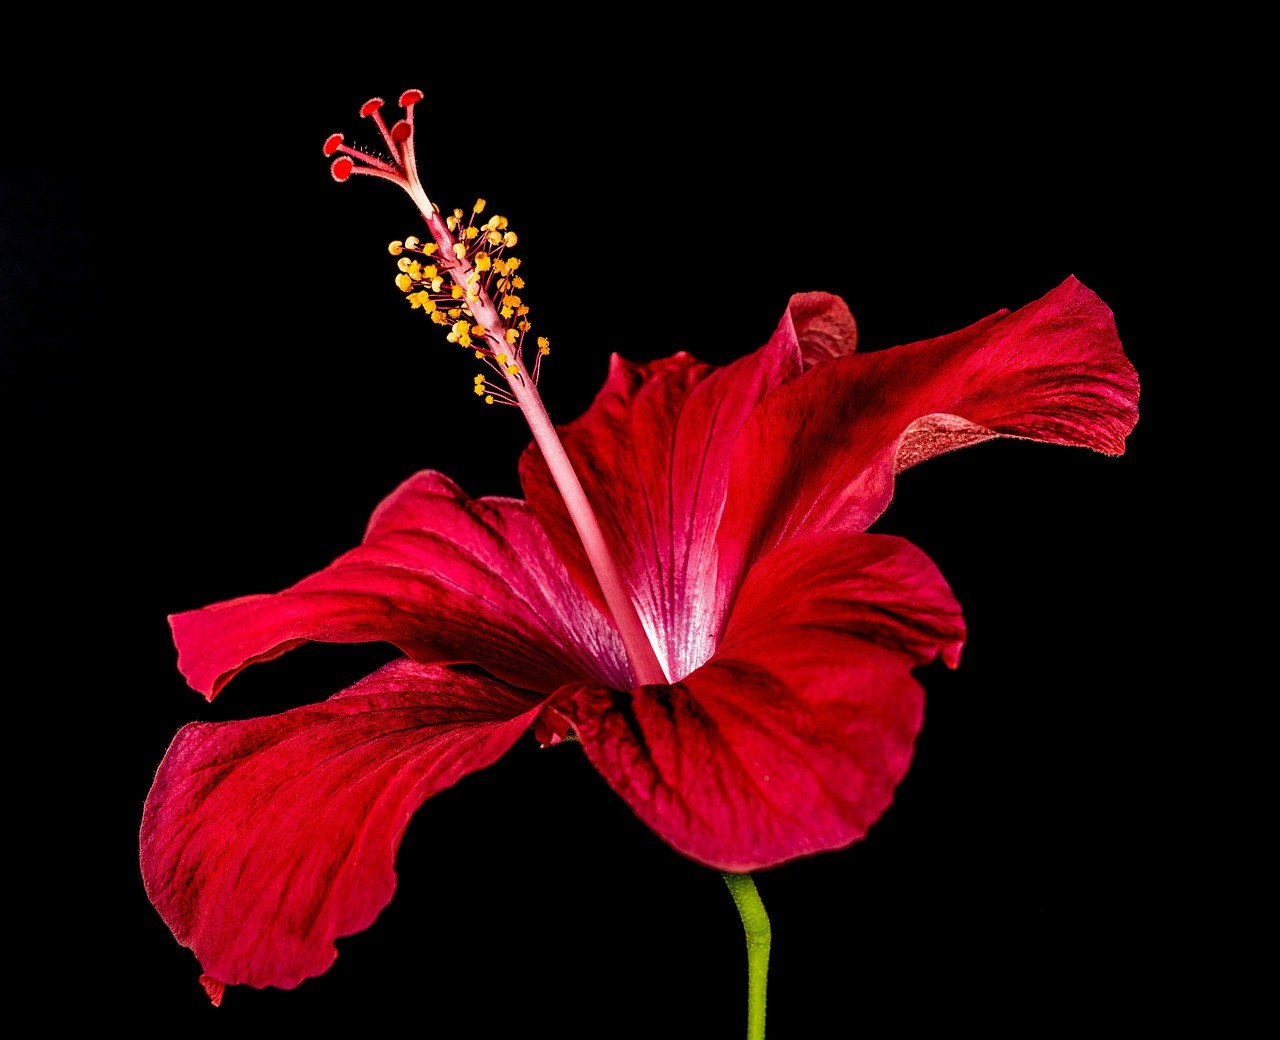 What's So Special About the Hibiscus Flower?